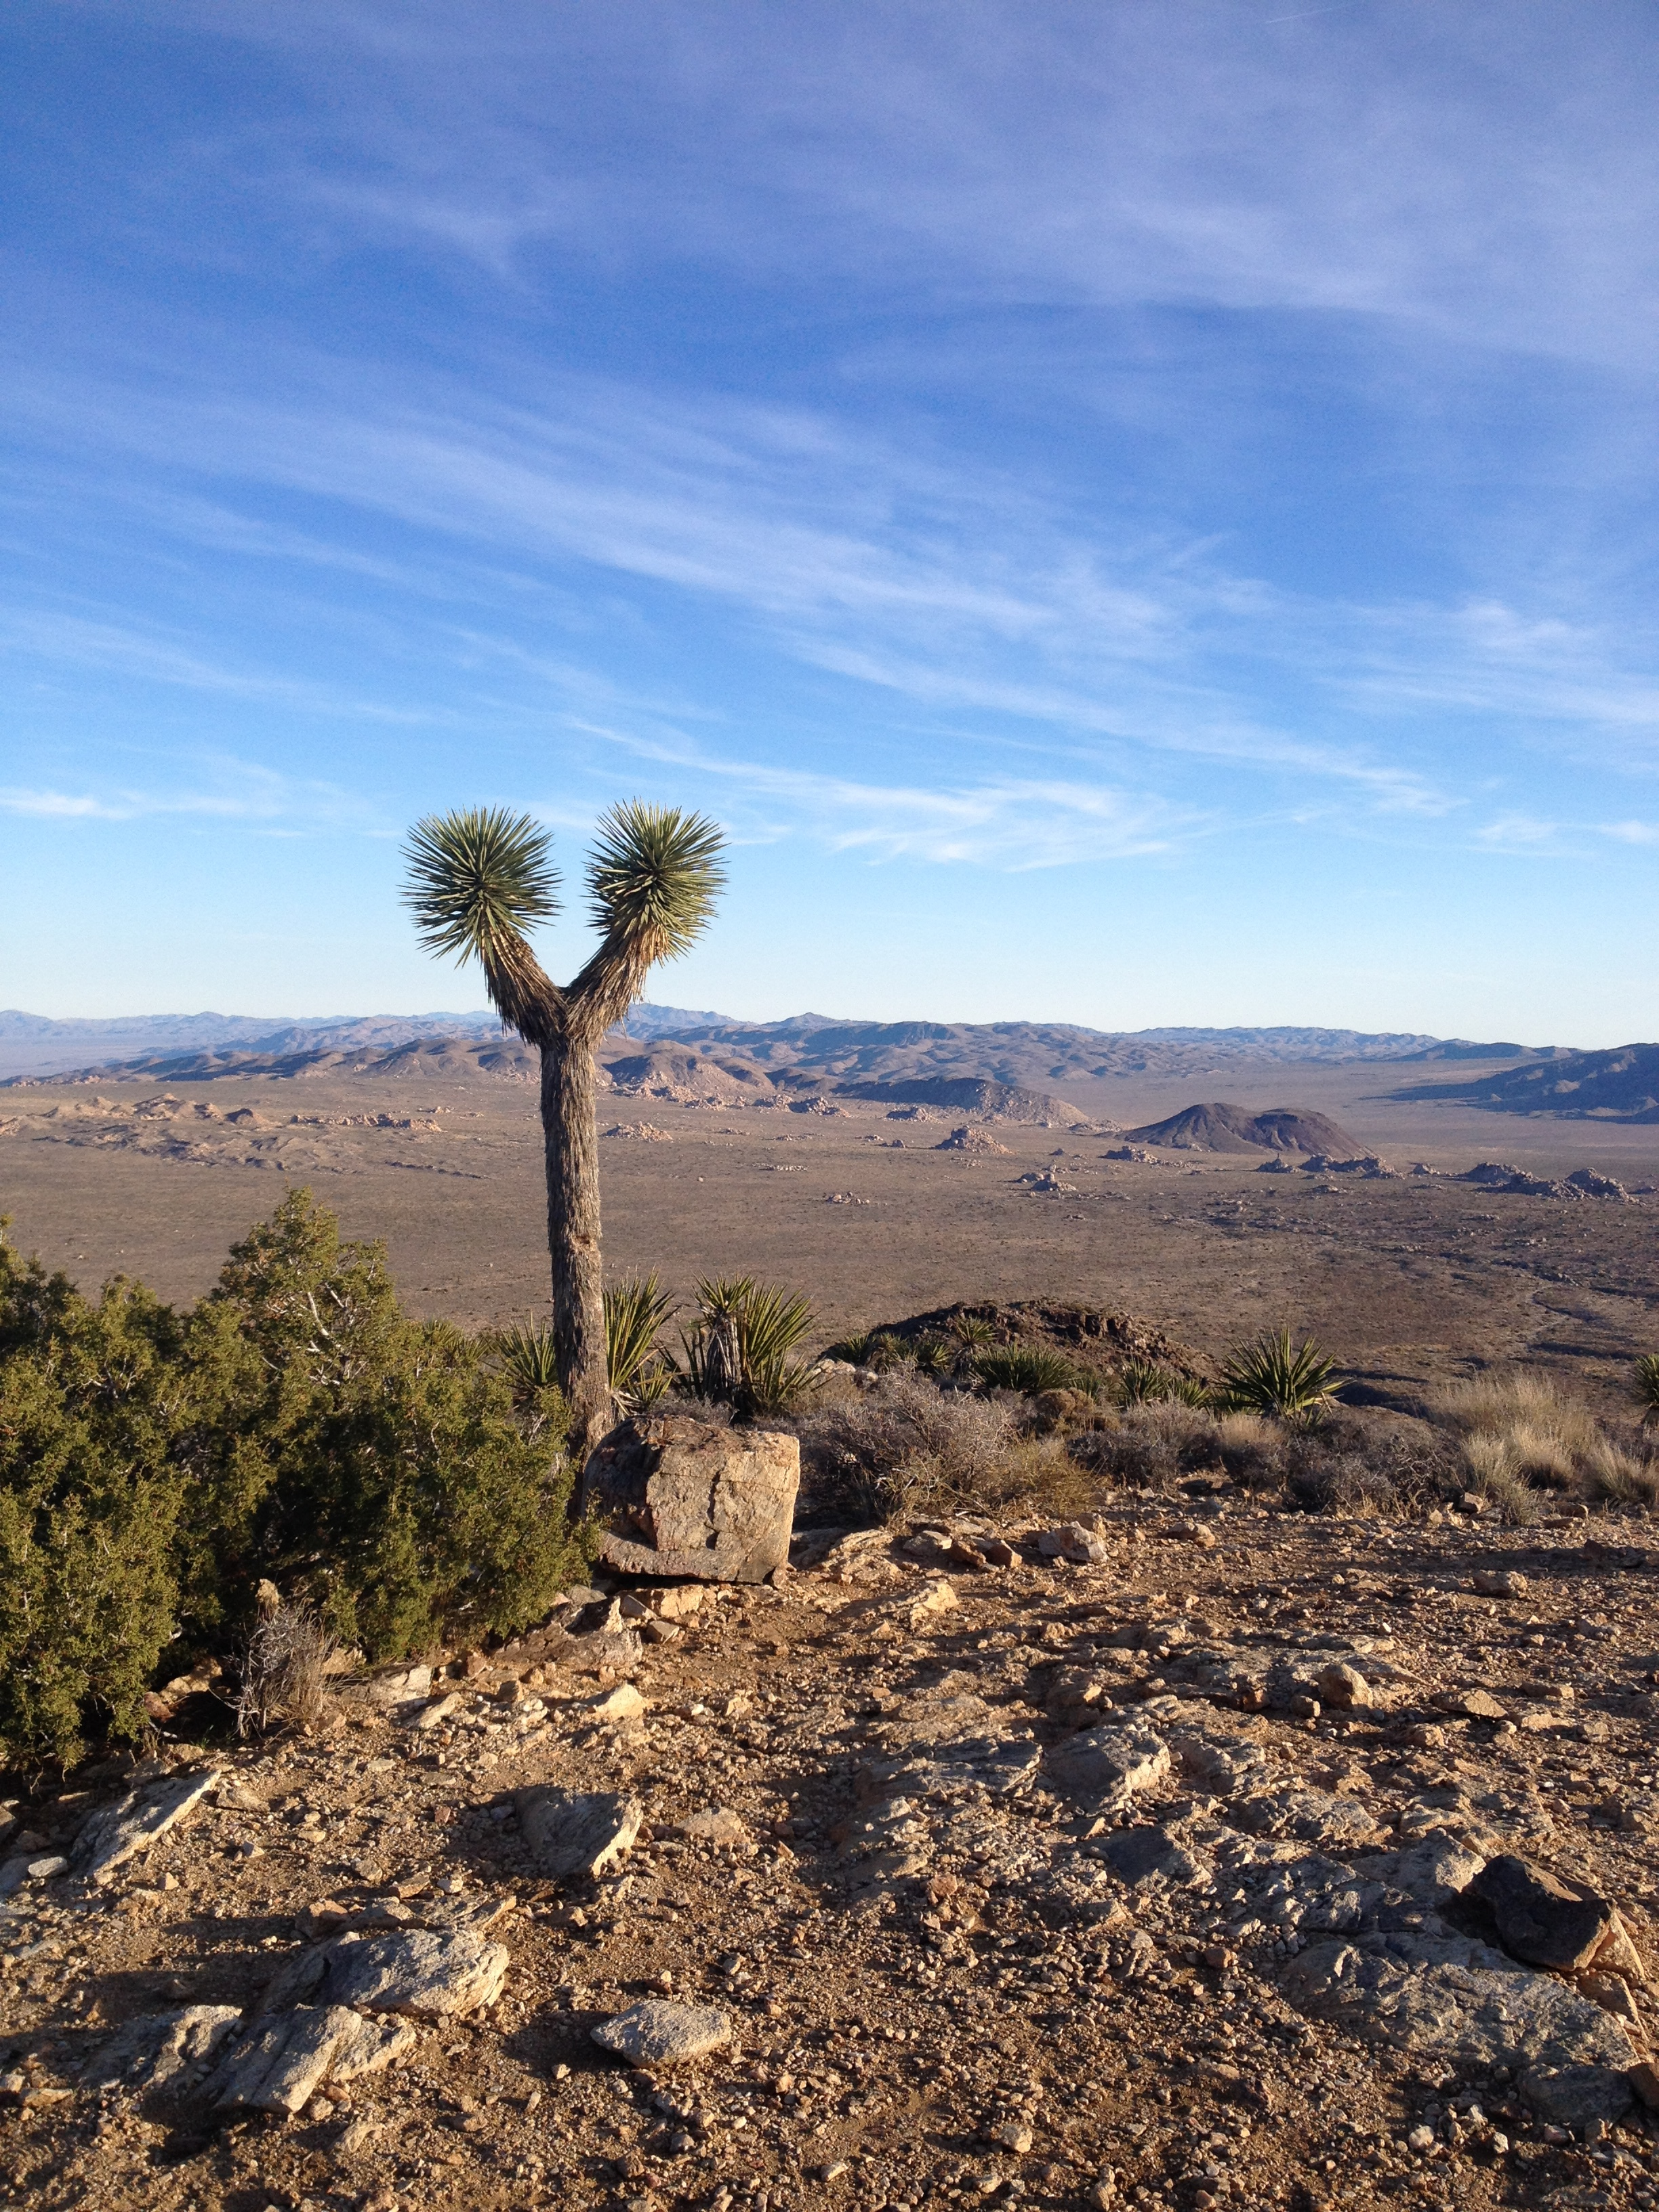 A Joshua Tree at the mountaintop of a hike.